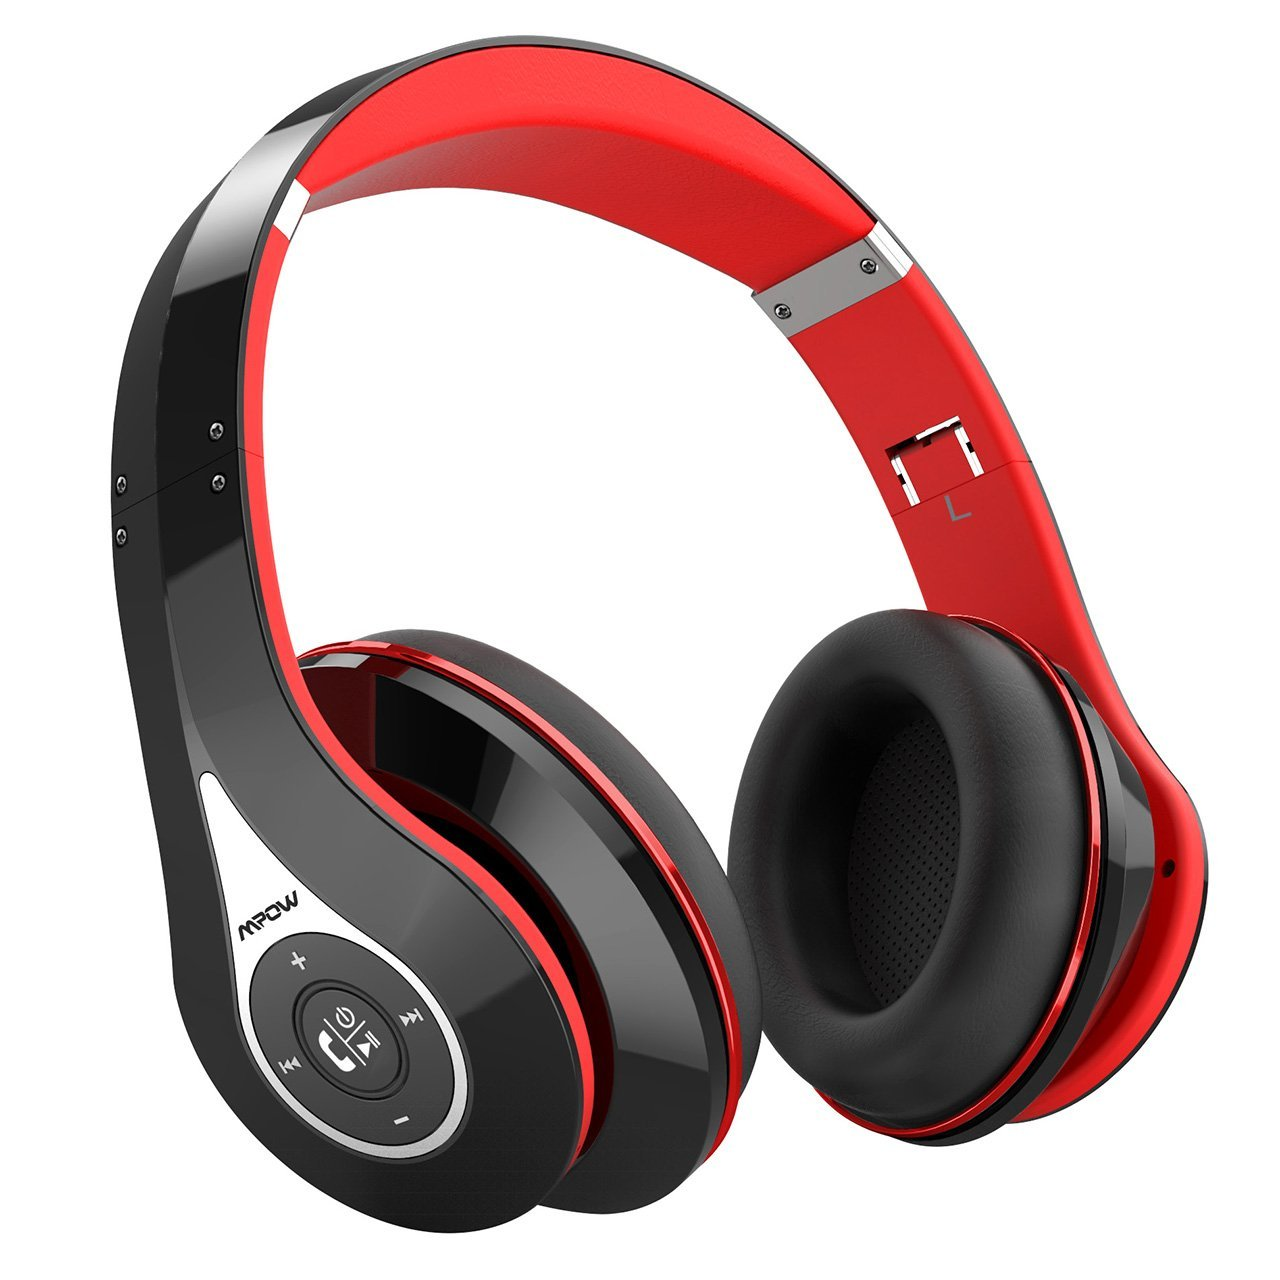 Casque audio sans fil Mpow